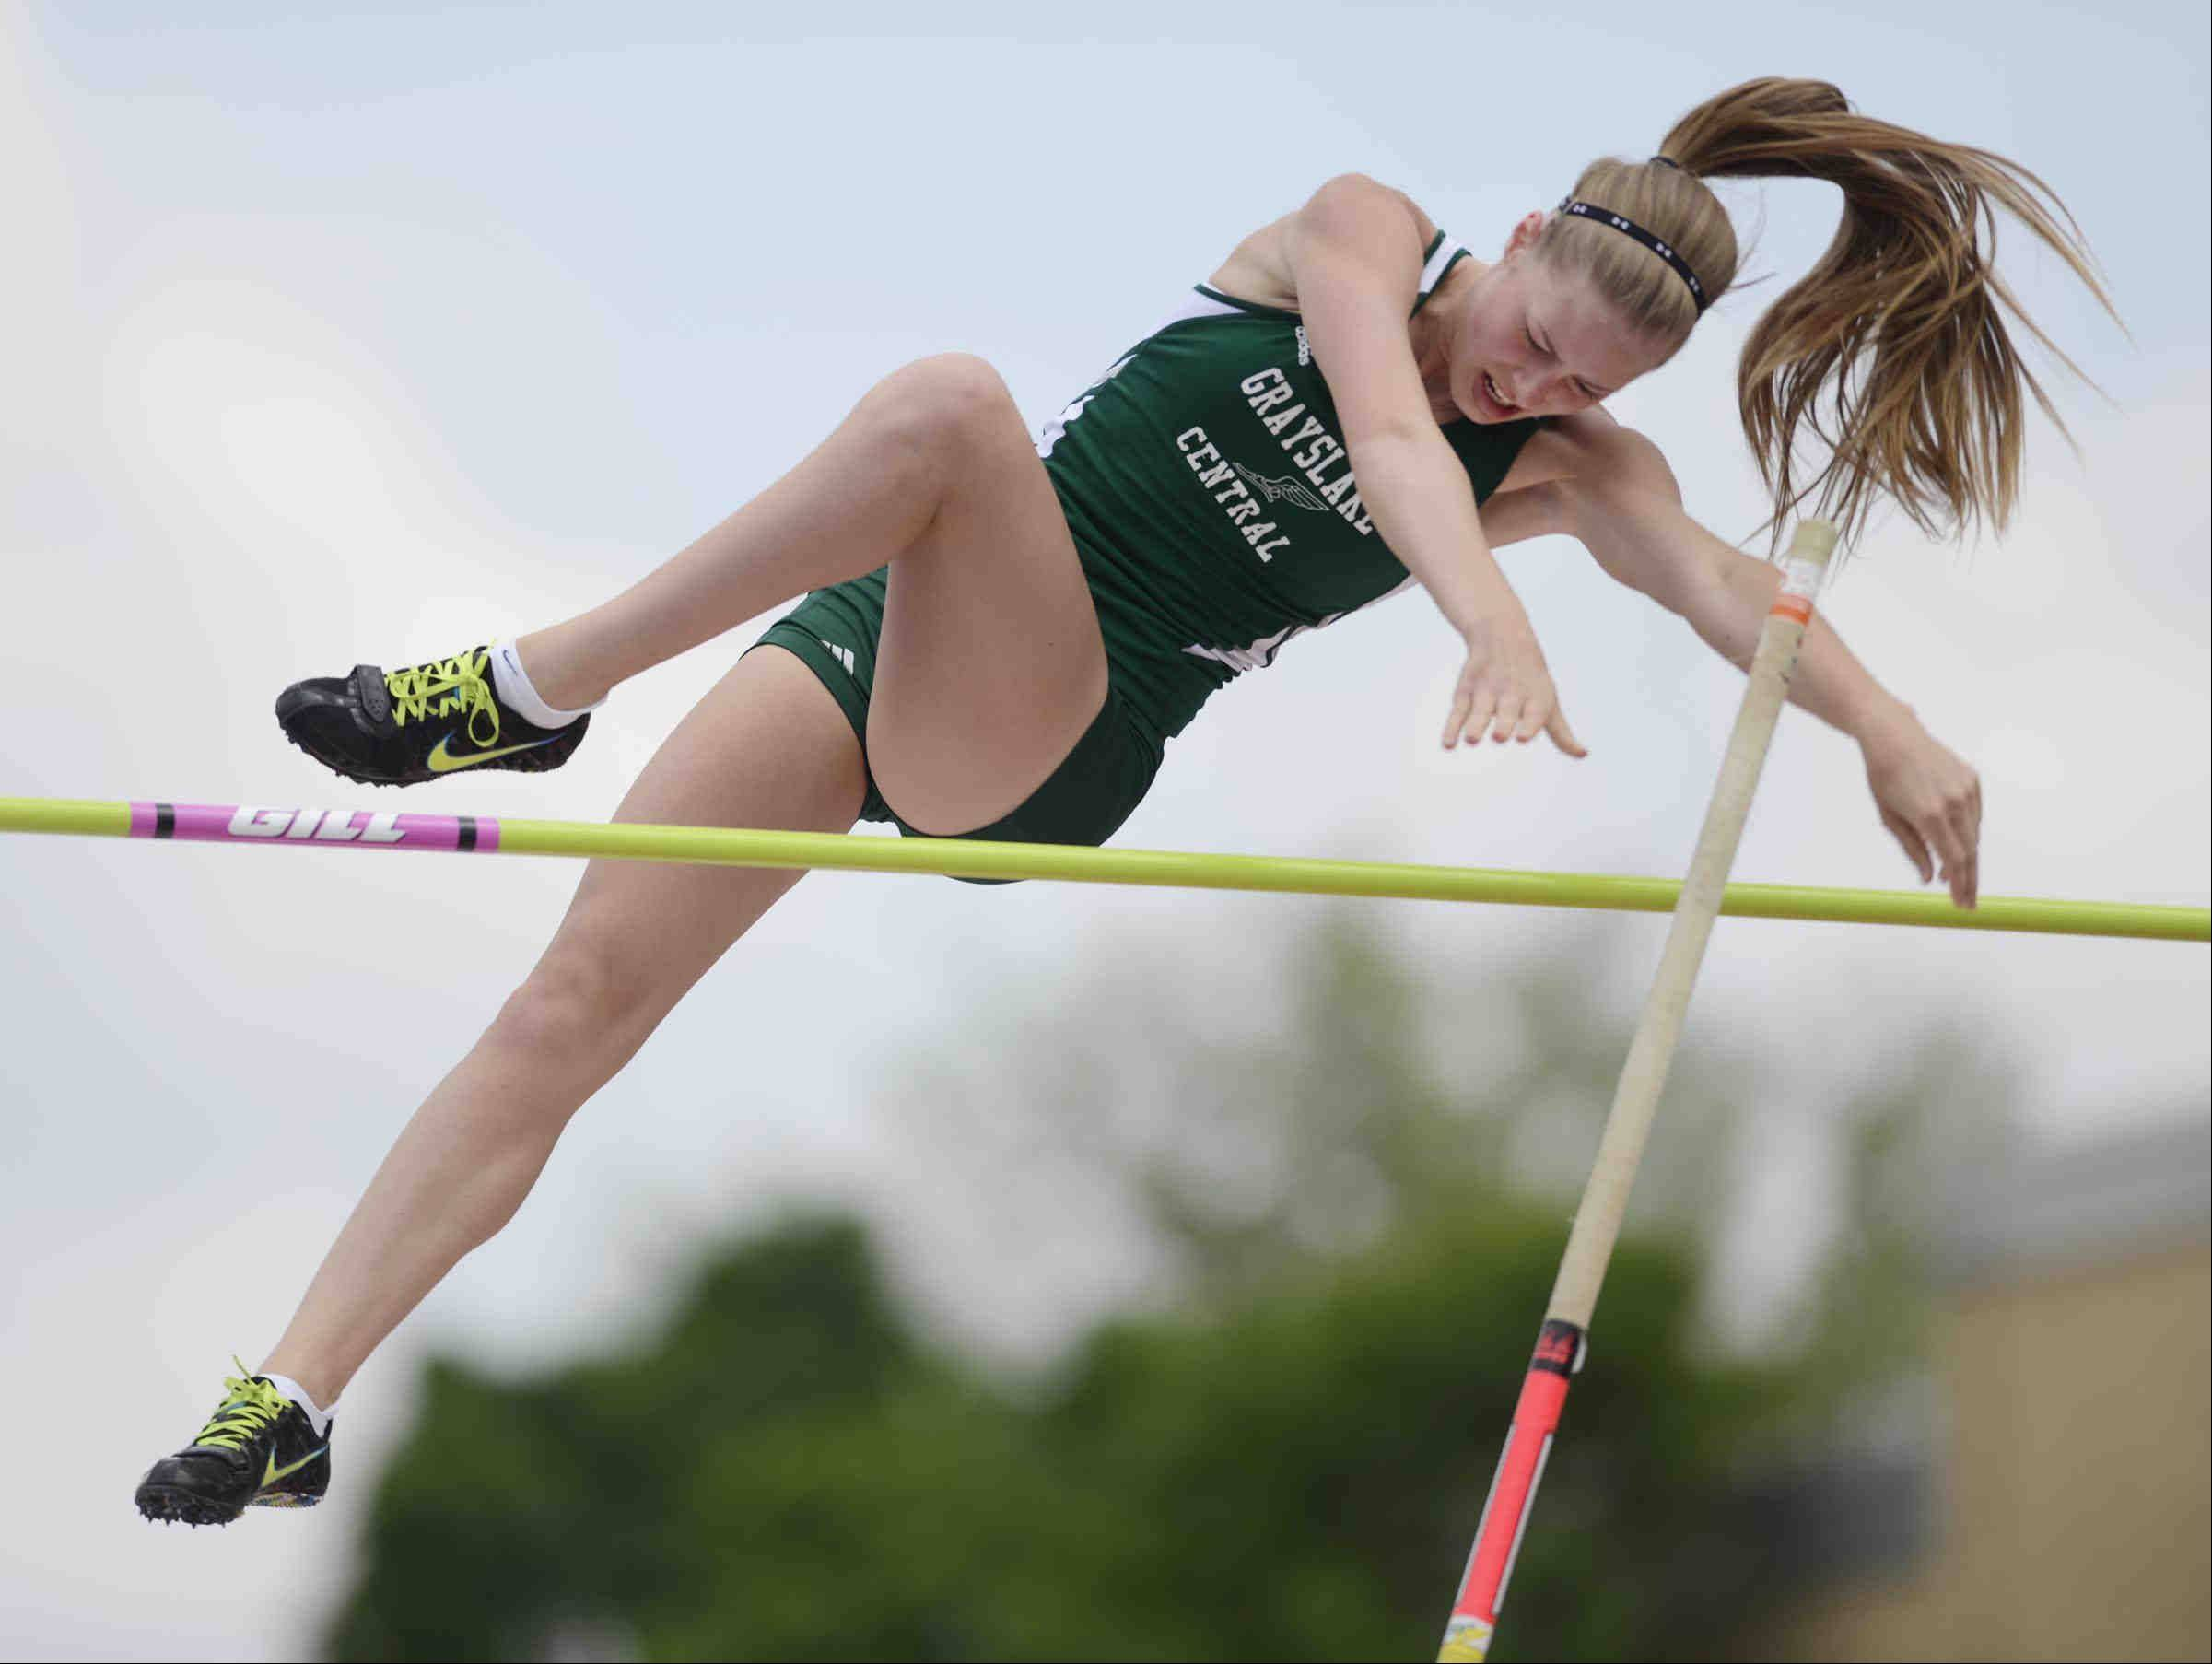 Grayslake Central's Cara Engel placed eighth Saturday in the pole vault at the Class 2A girls state track and field finals at O'Brien Stadium at Eastern Illinois University in Charleston.